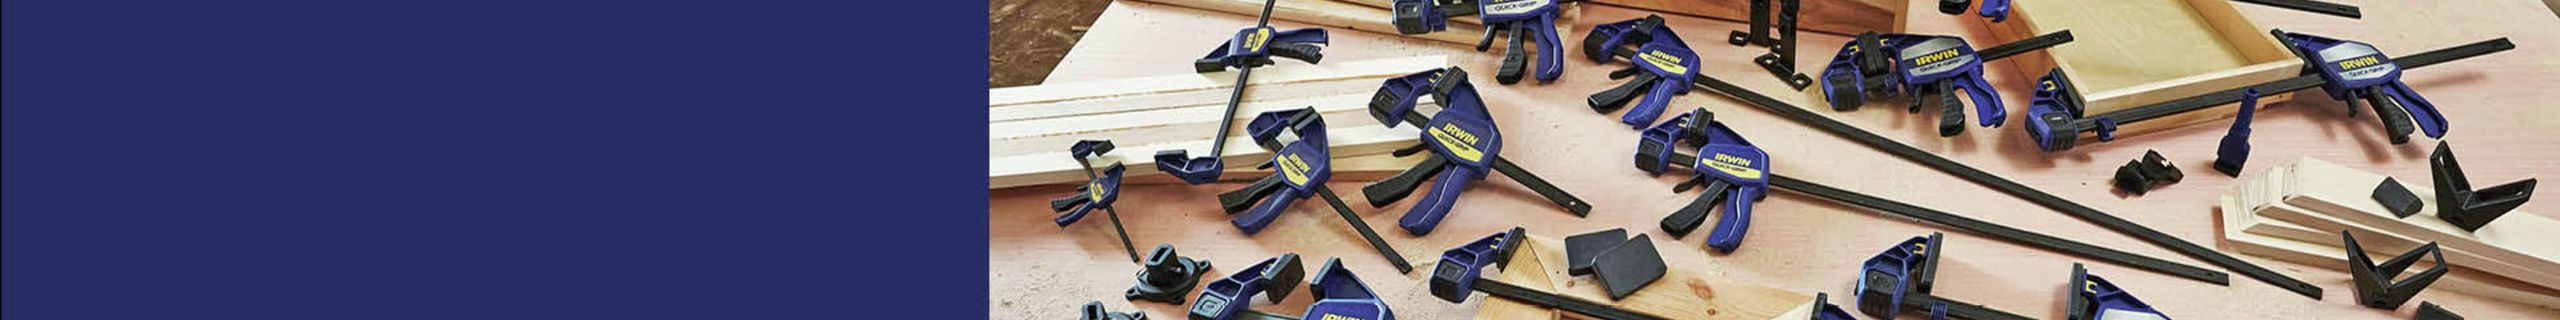 Multiple Irwin quick-grip clamps sprawled across a workbench and surrounded with timber